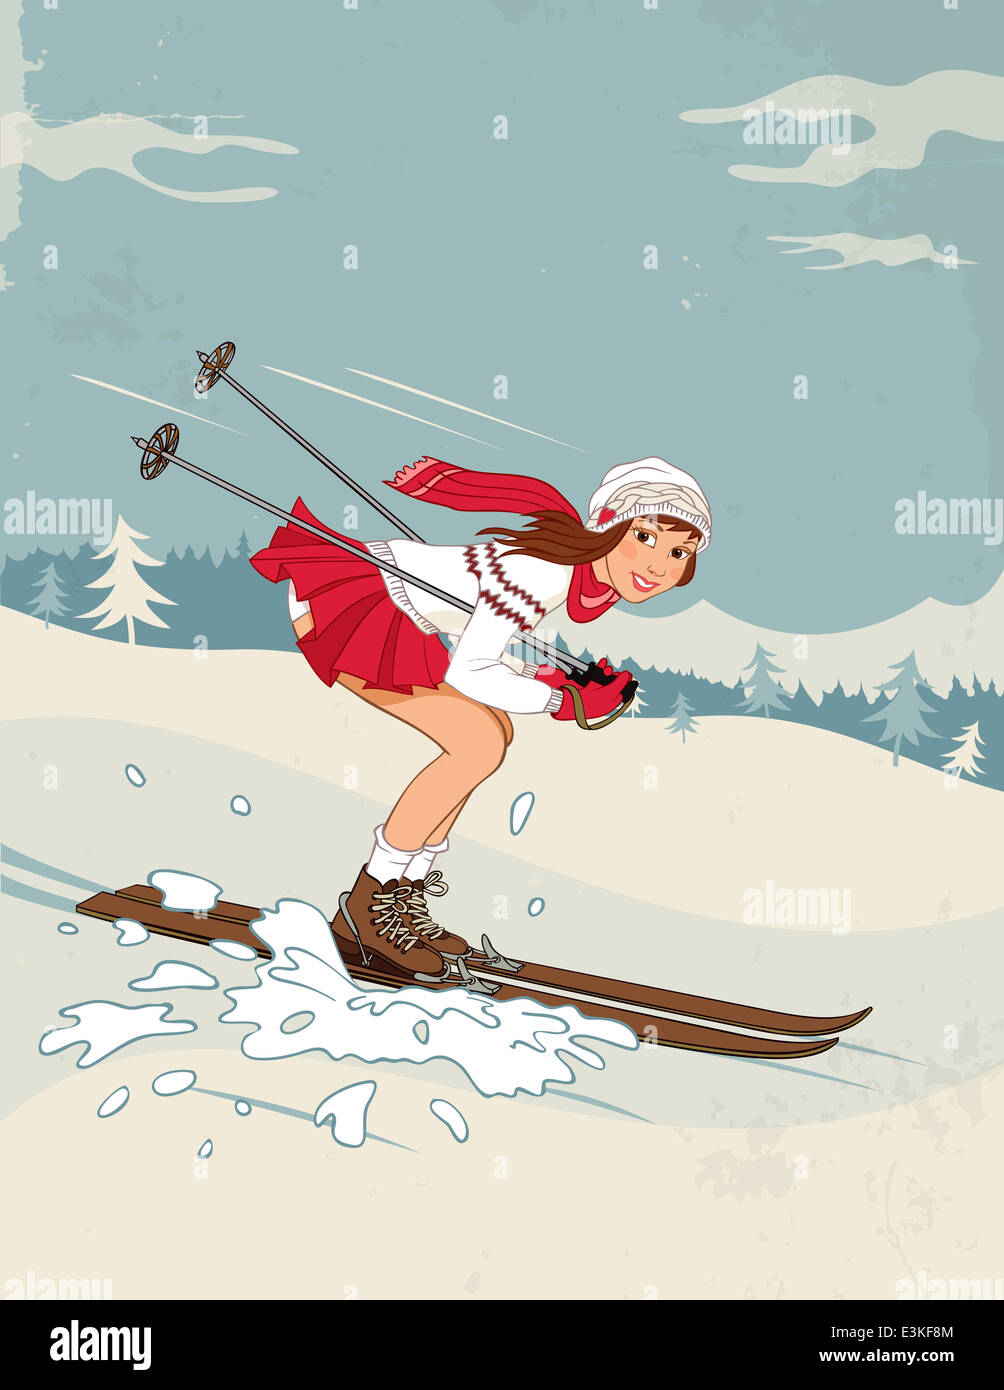 Winter sport poster in retro style with pin up girl stock photo winter sport poster in retro style with pin up girl thecheapjerseys Images